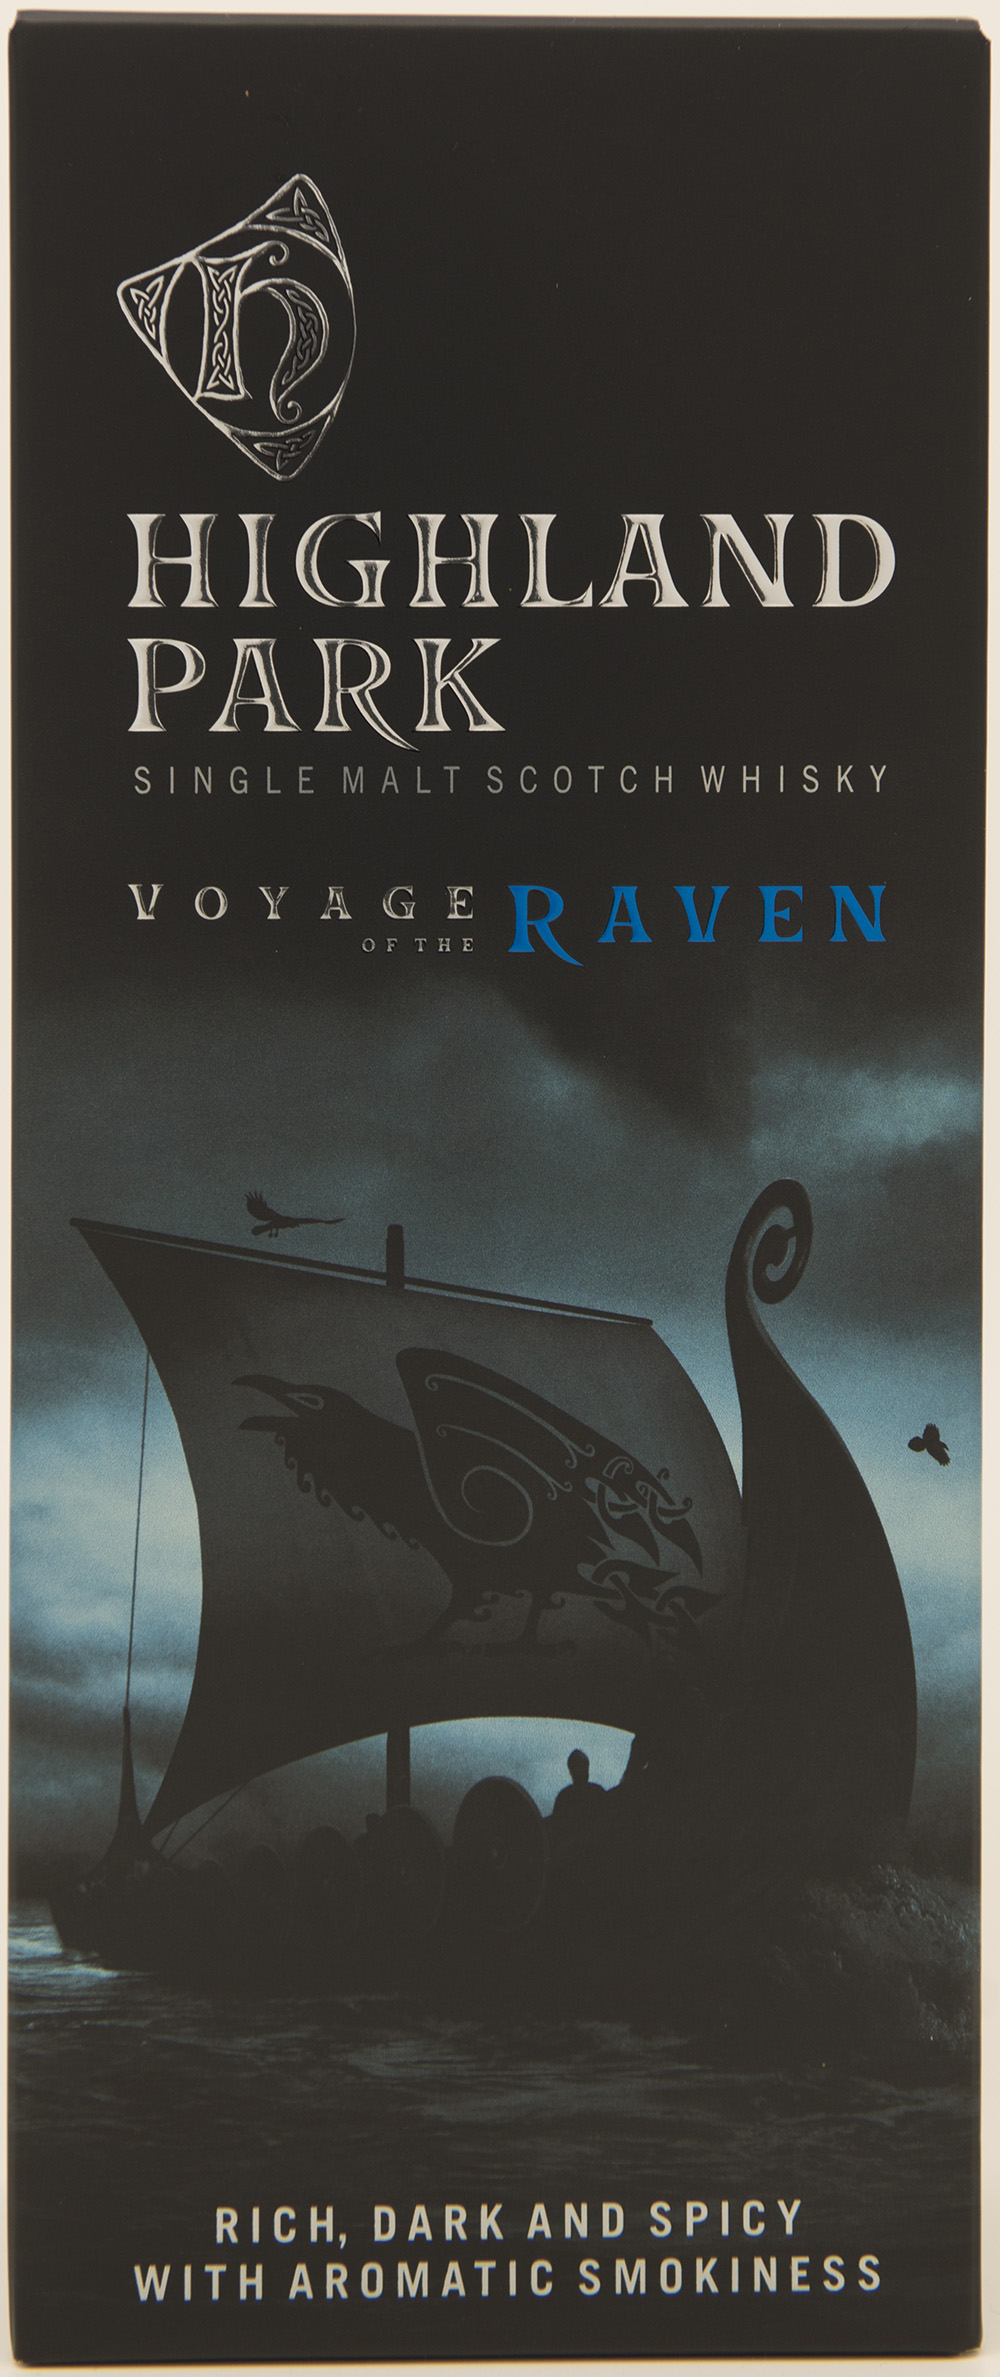 Billede: DSC_3706 - Highland Park - Voyage of the Raven (box front).jpg